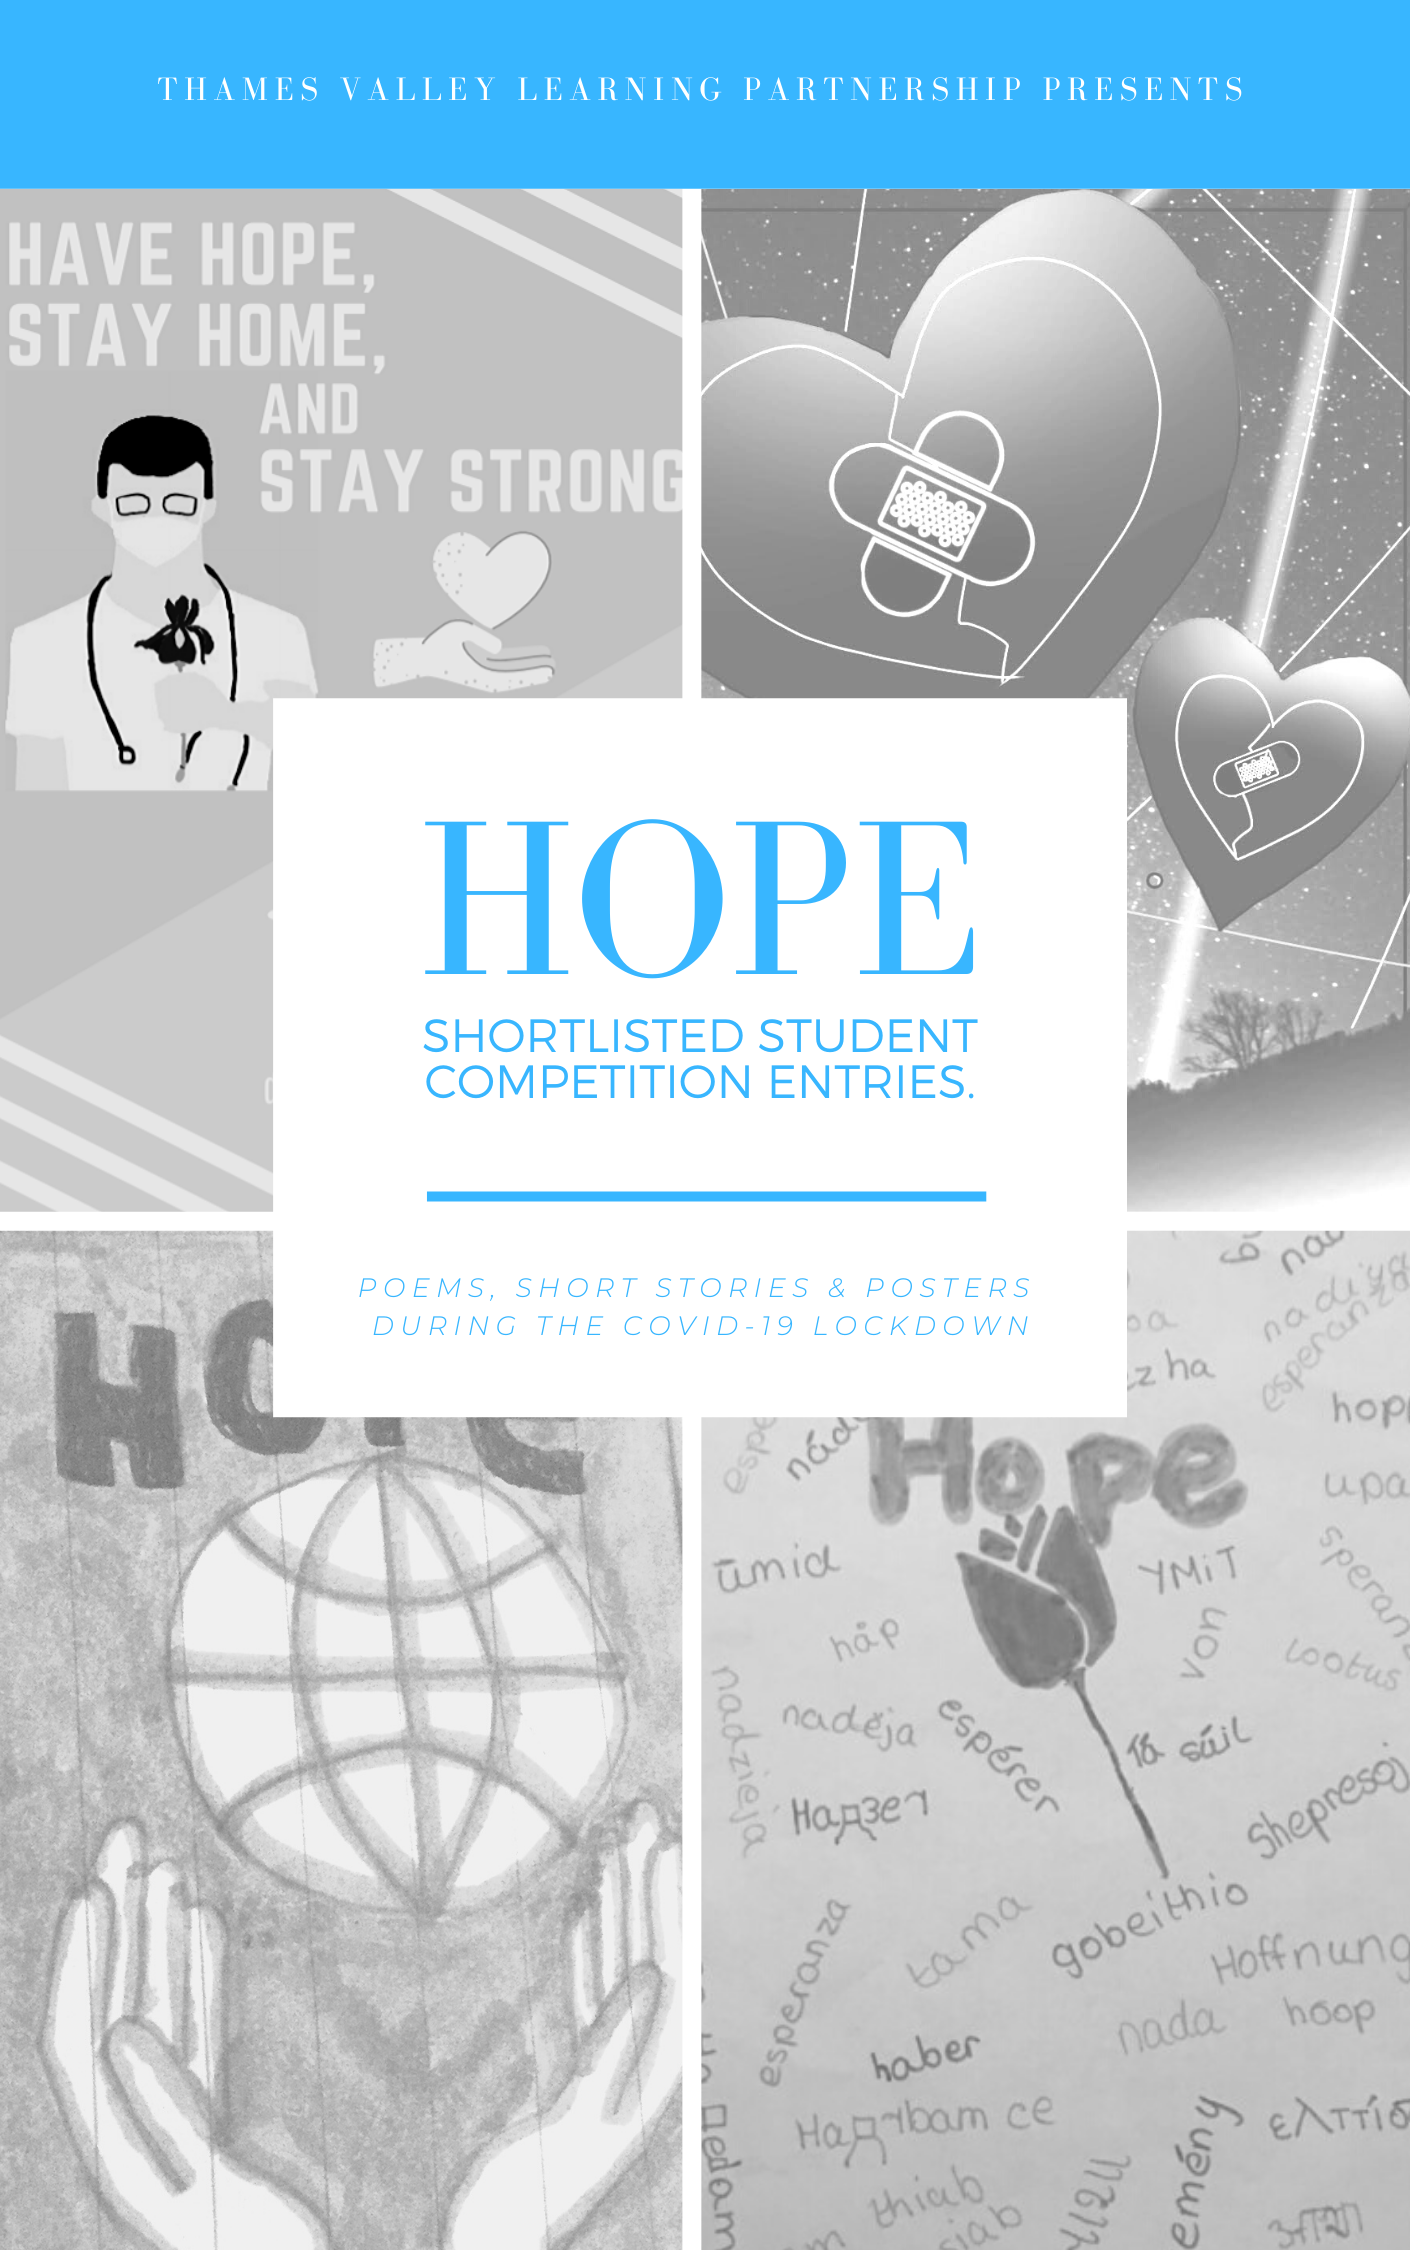 HopeCompetitionBookPg1-6